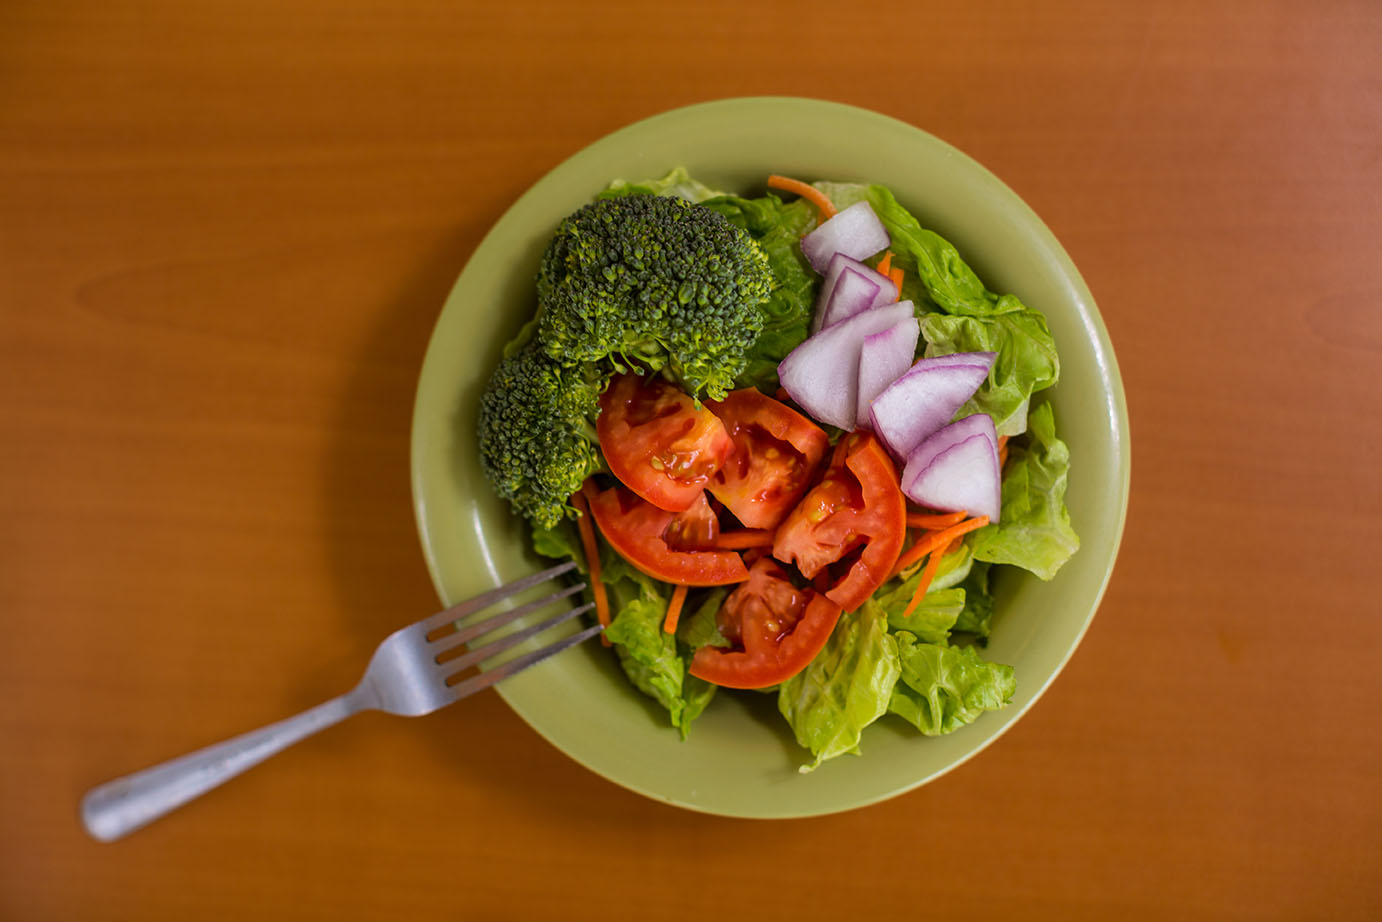 a photo of a mixed greens salad with carrots and red onion